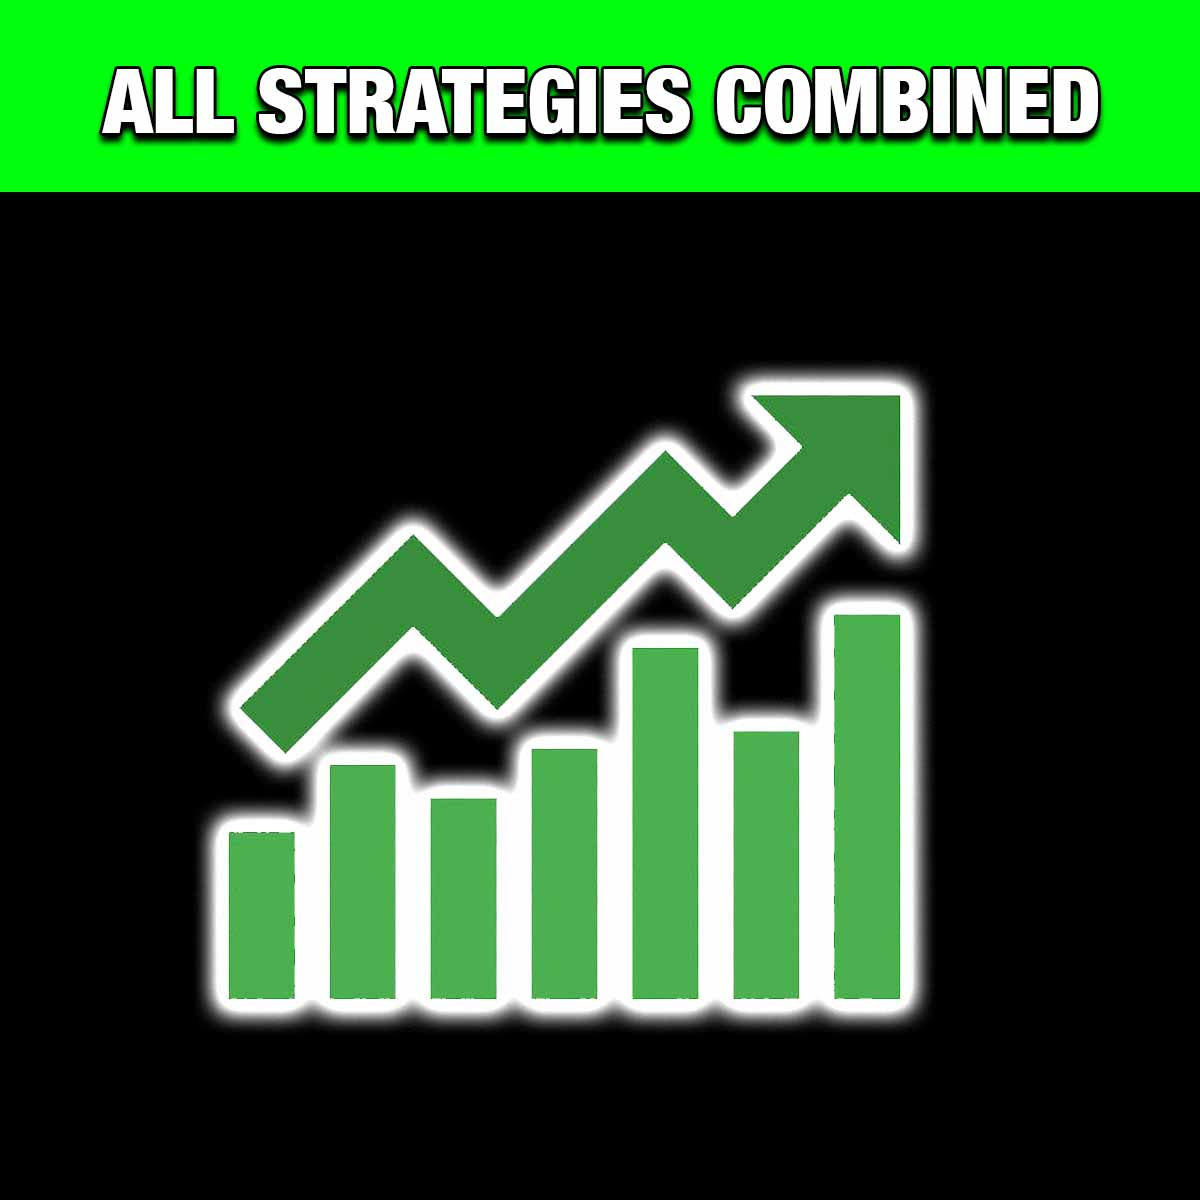 All trading strategies combined